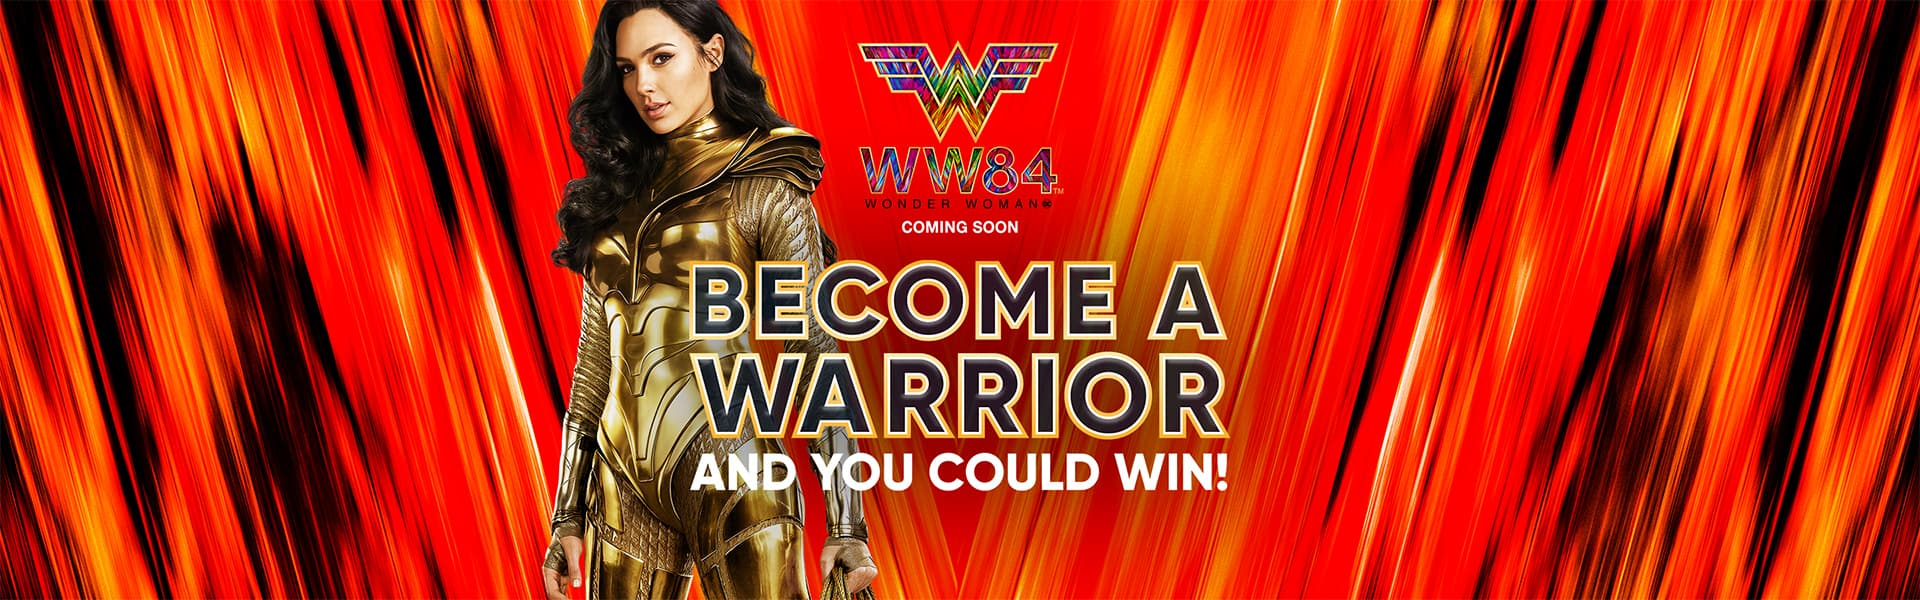 Doritos Become A Warrior Sweepstakes 2020